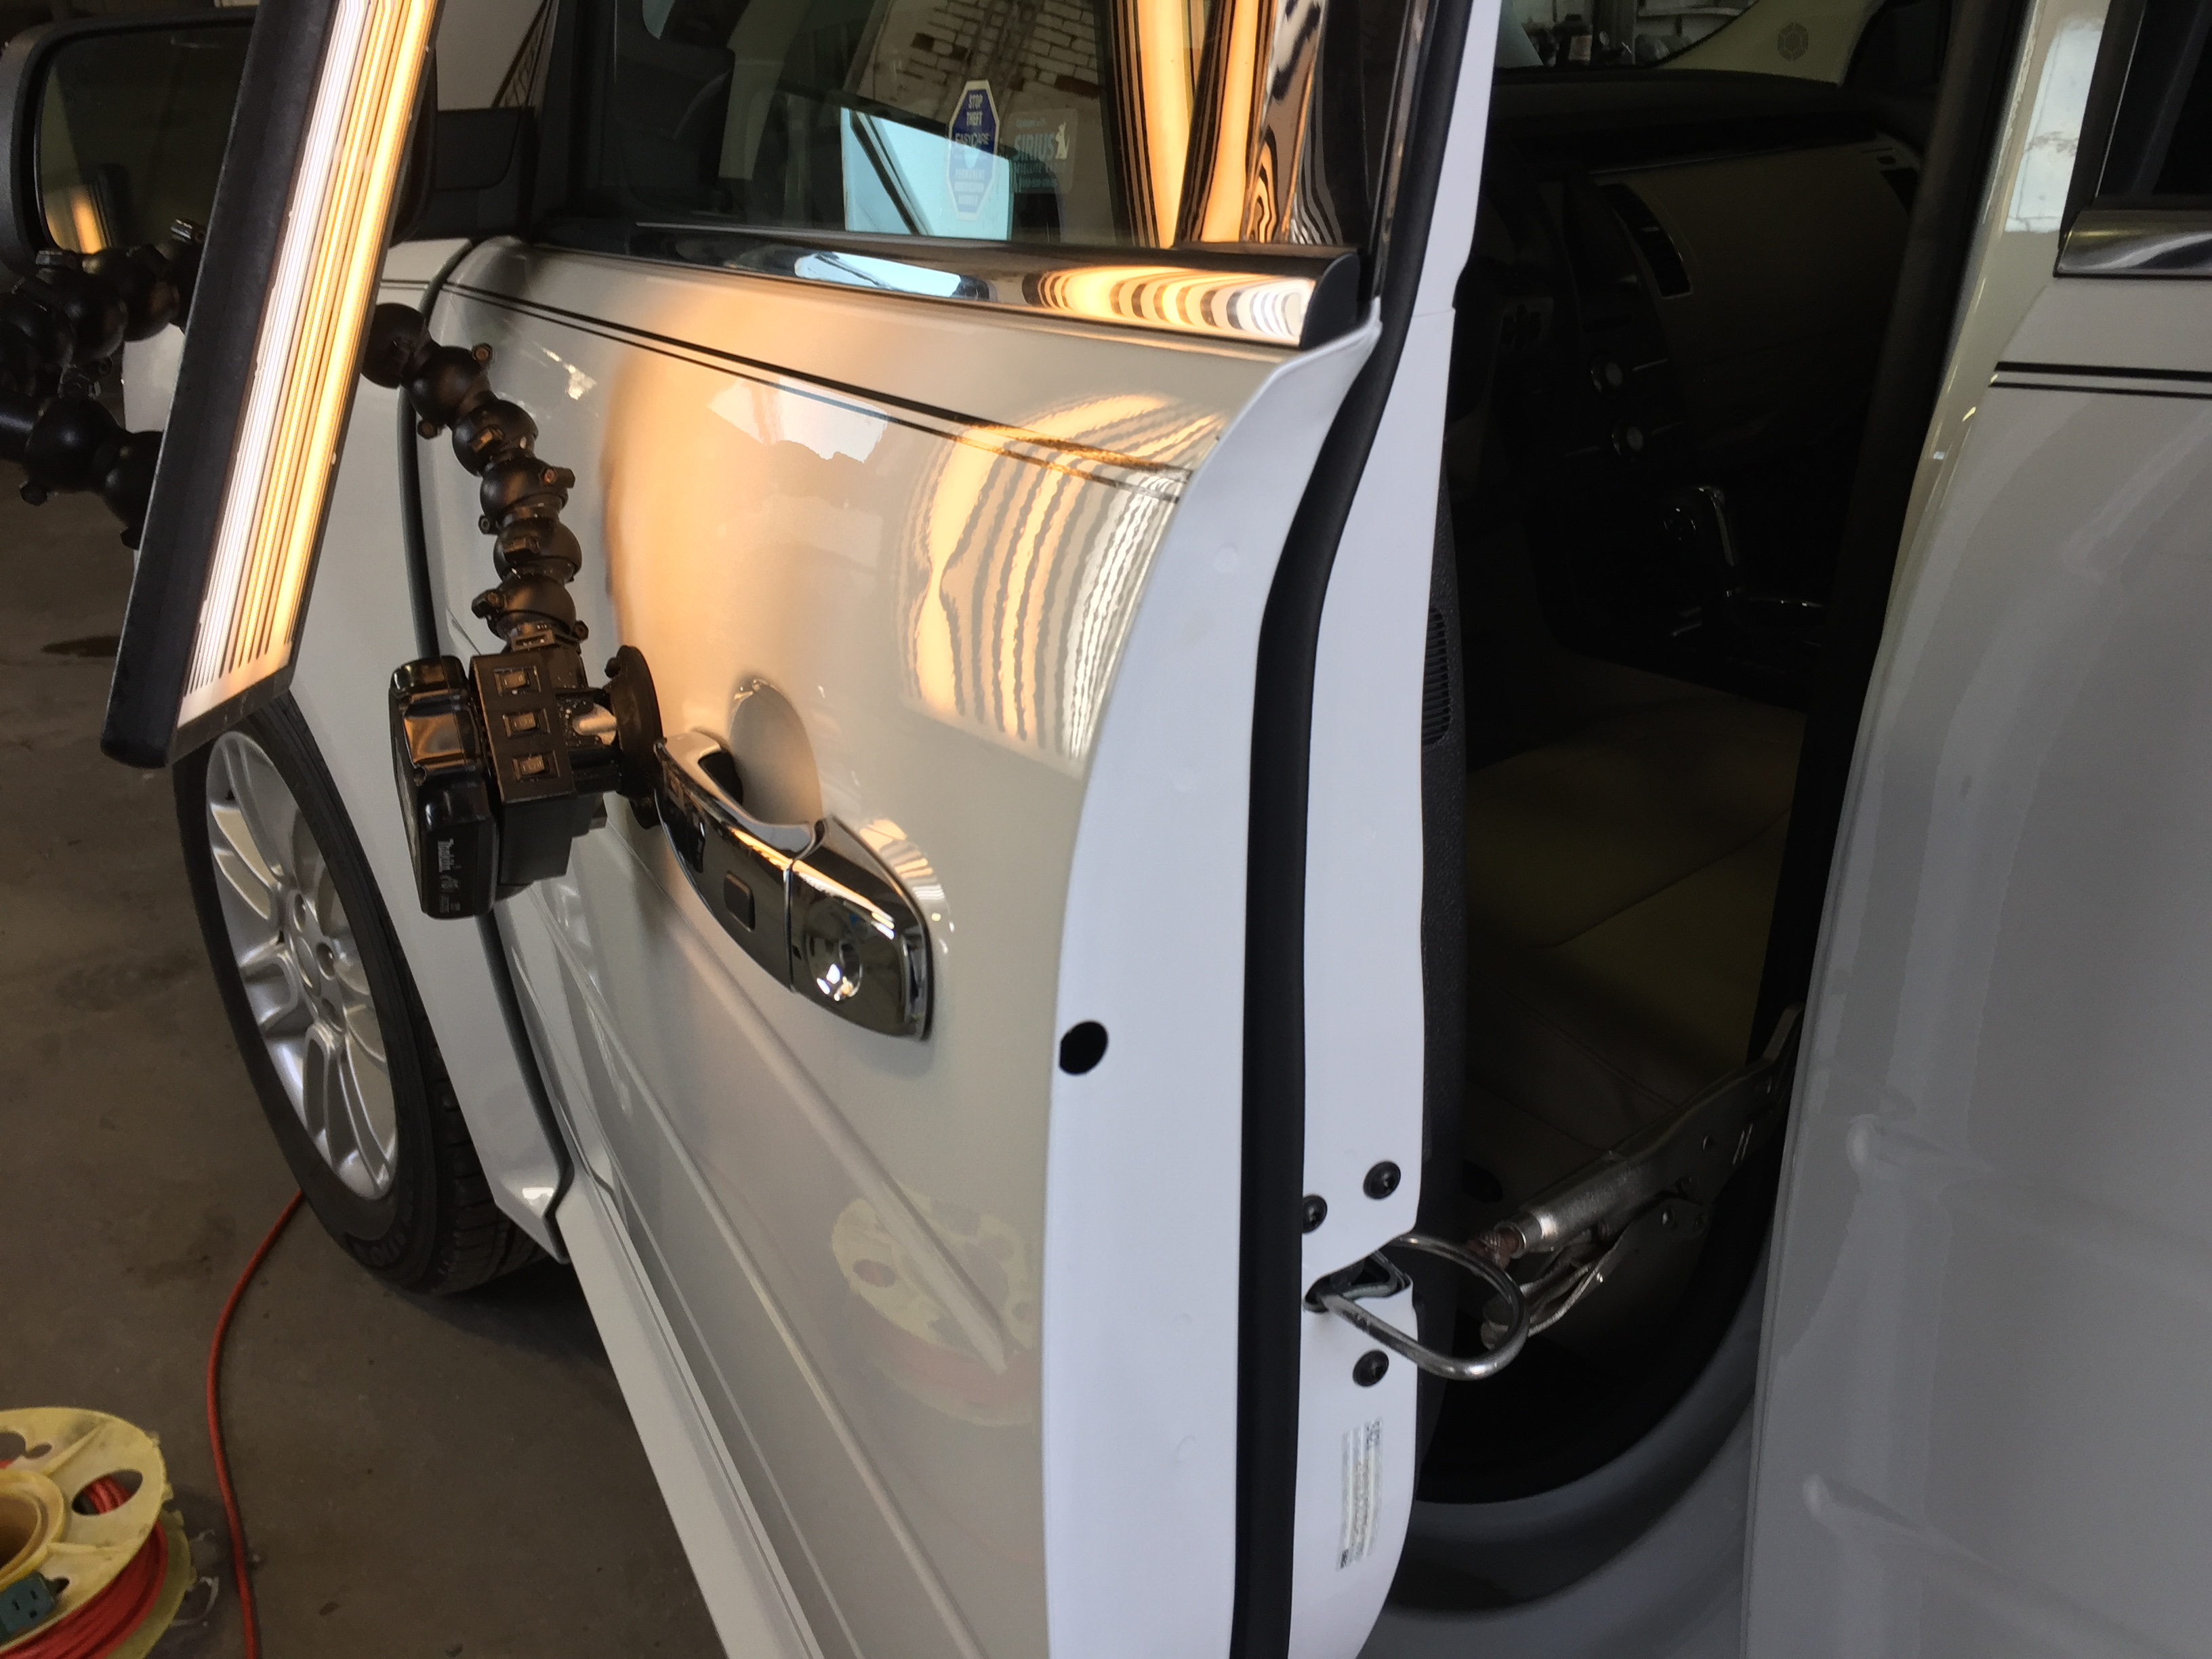 2015 Ford Flex, Dent Removal in the drivers door, Image's of before during and after this dent removal process. Paintless Dent Repair, Springfield, IL, http://217dent.com